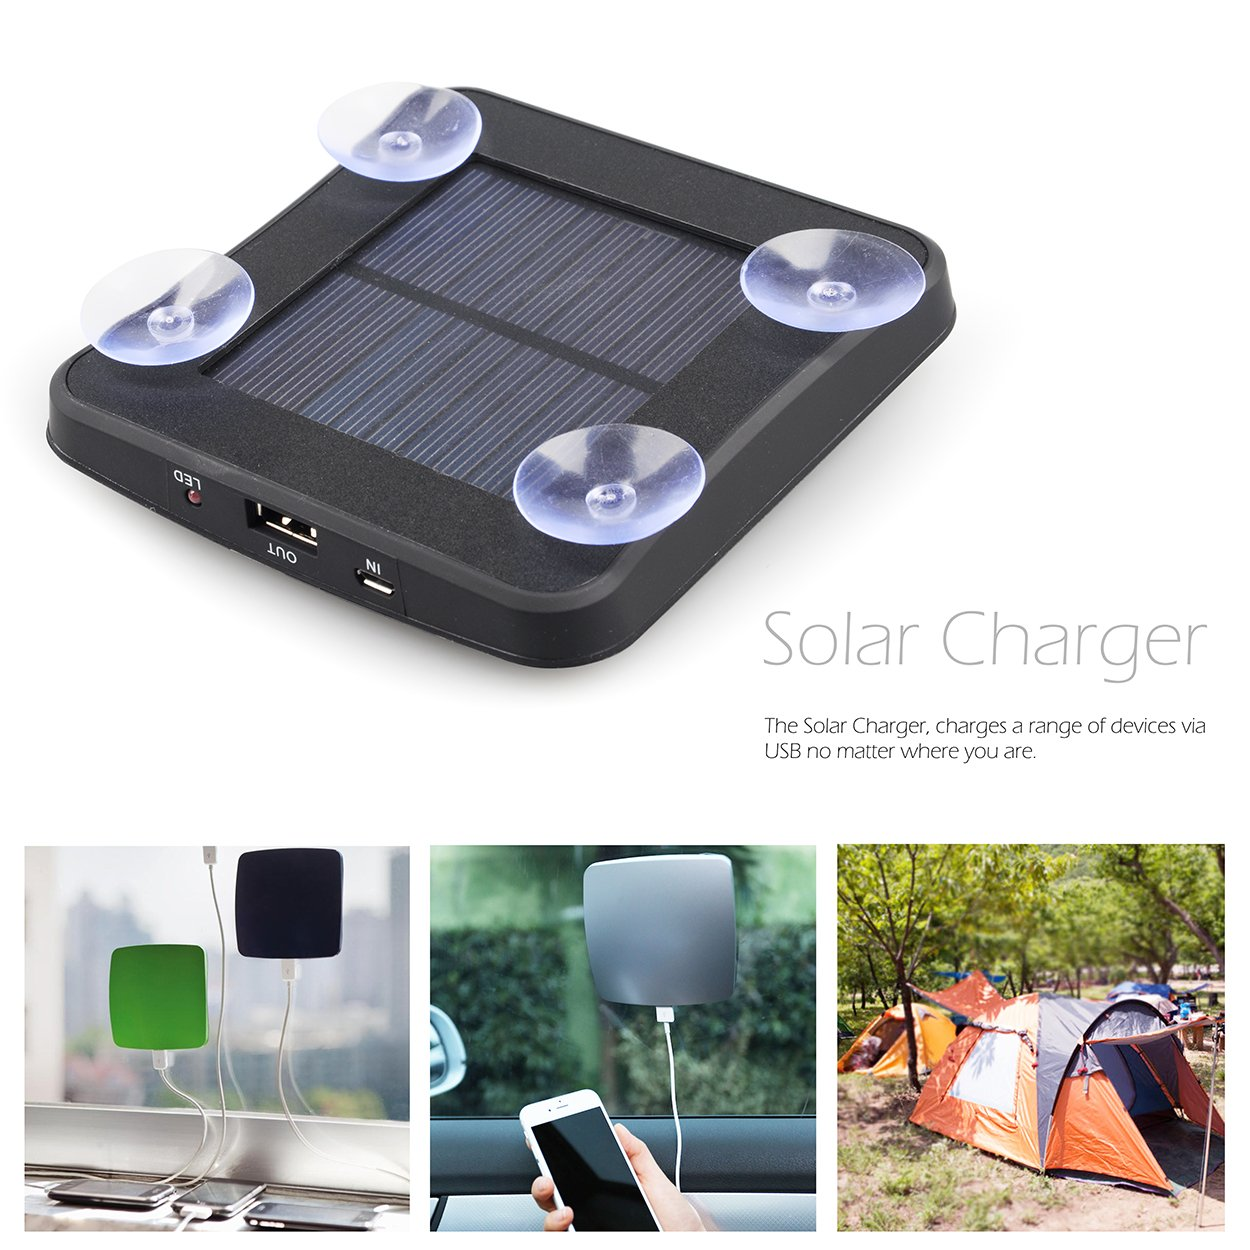 Solar Window Charger with Suction Cups,1800mAh Quick Power Bank Portable w//USB Sticks Windows for iPhone,Android Phones by LC Prime iPods MP3 Digital Cameras Plastic Black MP4